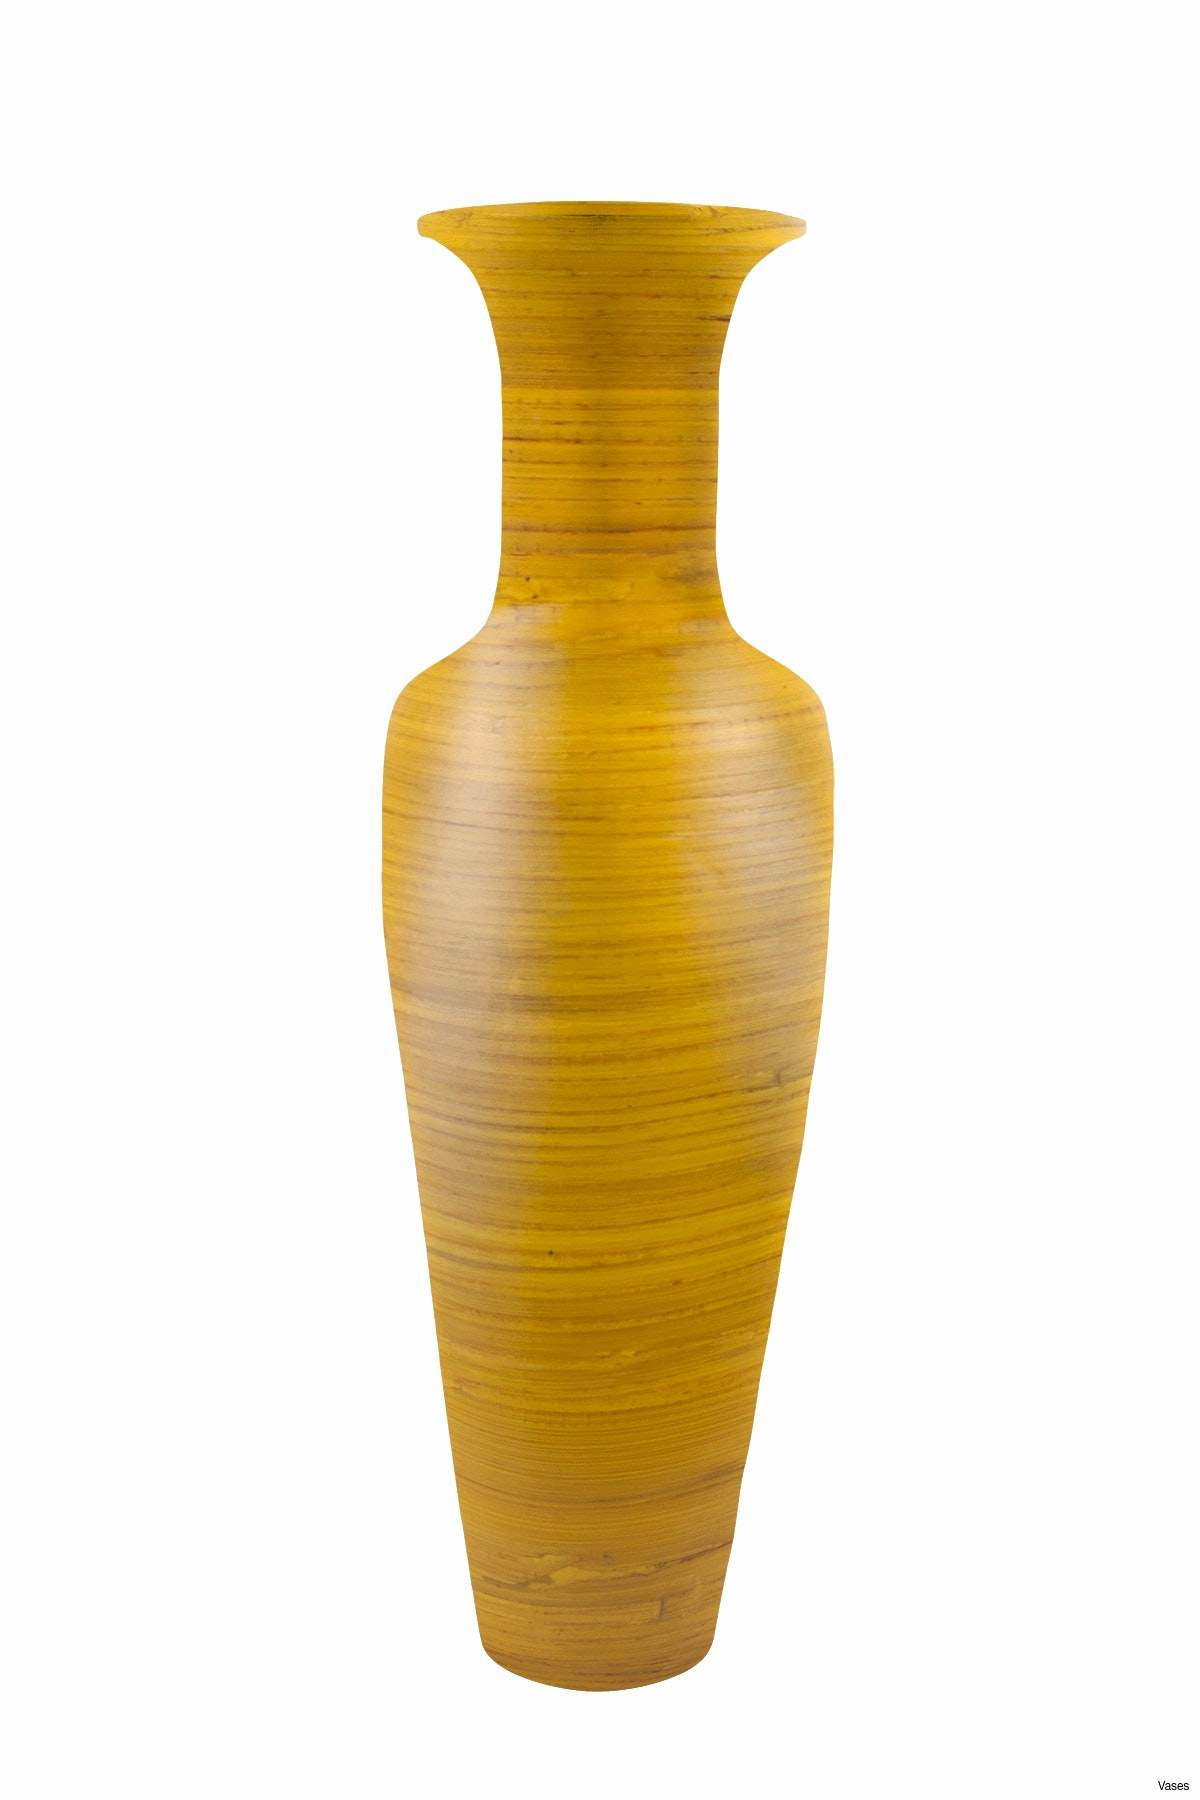 Set Of 3 Cylinder Glass Vases Of Ceramic Vase Set Collection area Floor Rugs New Joaquin Gray Vases within Ceramic Vase Set Collection area Floor Rugs New Joaquin Gray Vases Set 3 2h Pottery Floor